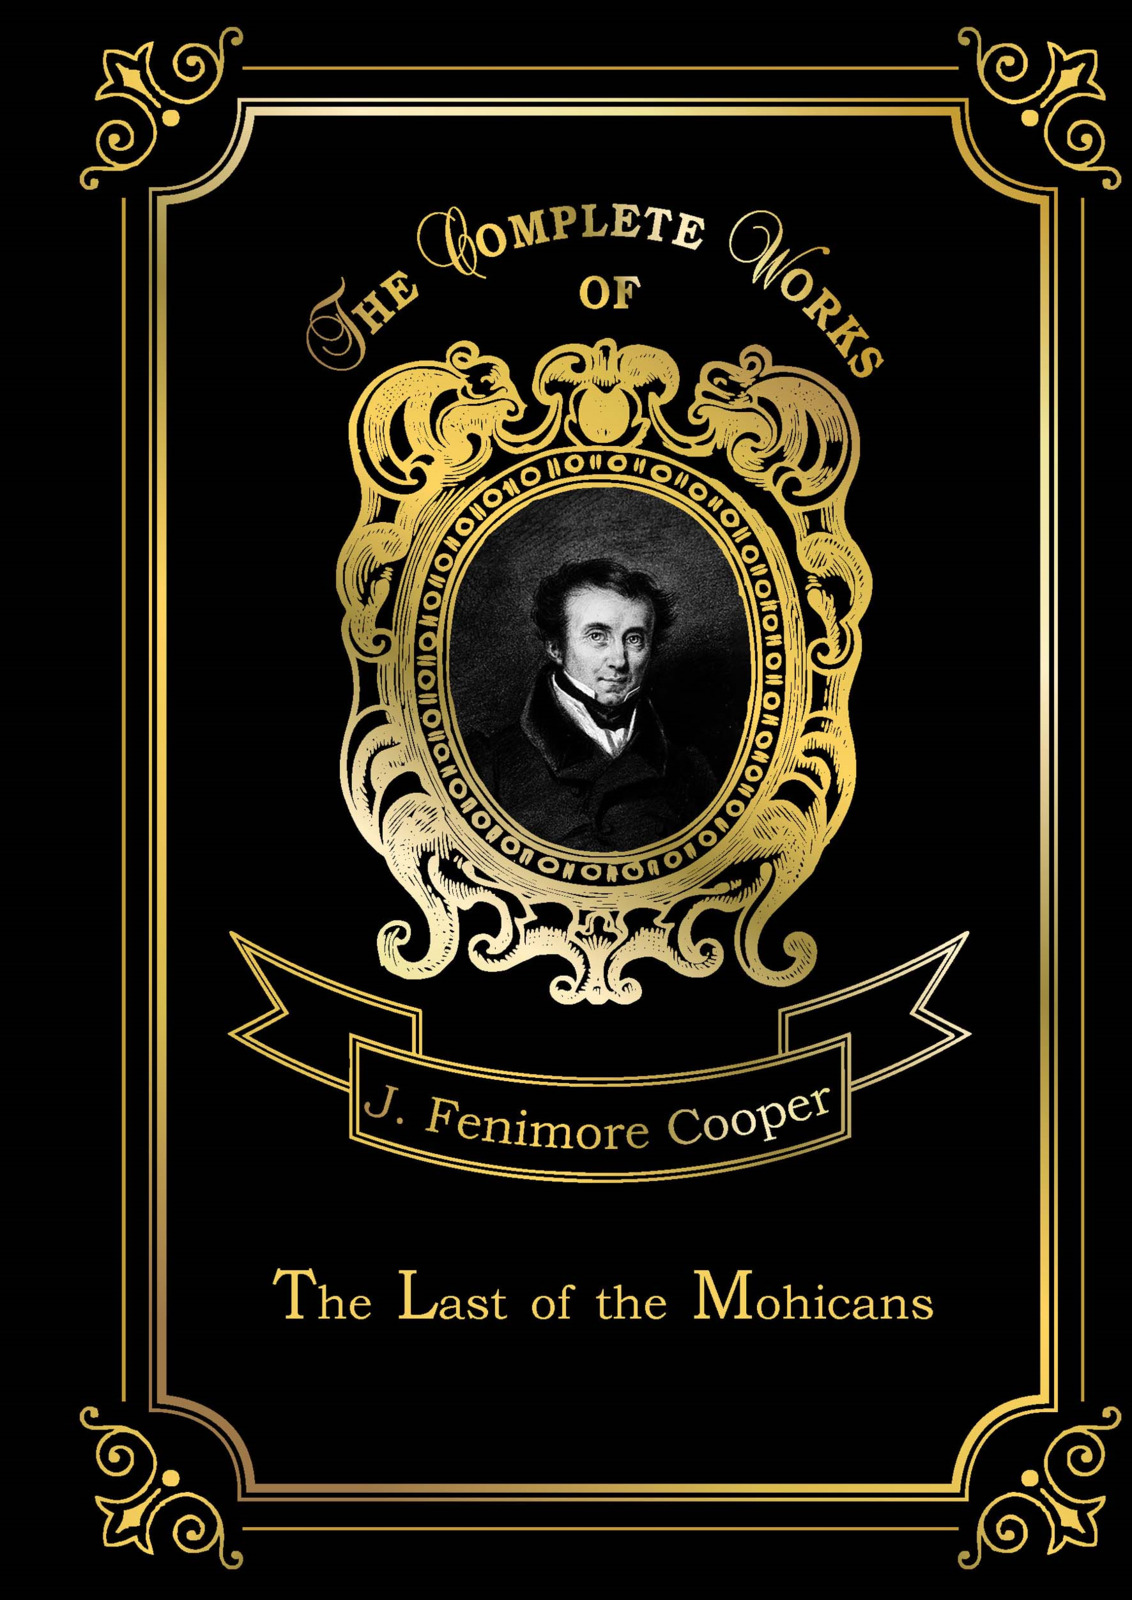 J.Fenimore Cooper The Last of the Mohicans howard fast the last frontier